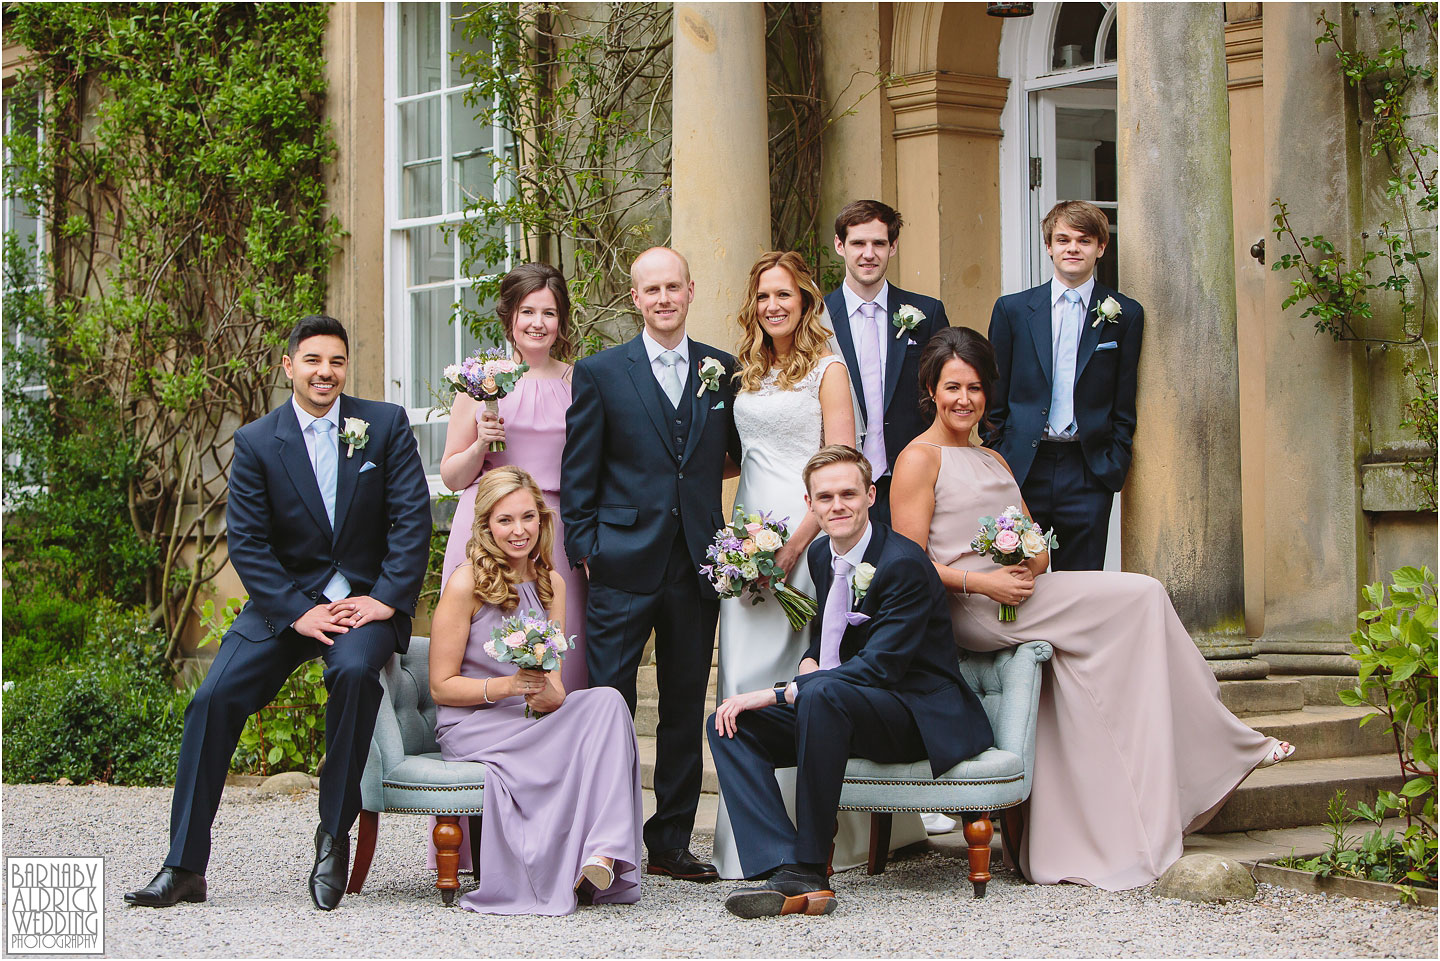 Inventive Wedding photography groupshot, Middleton Lodge Richmond Wedding Photography